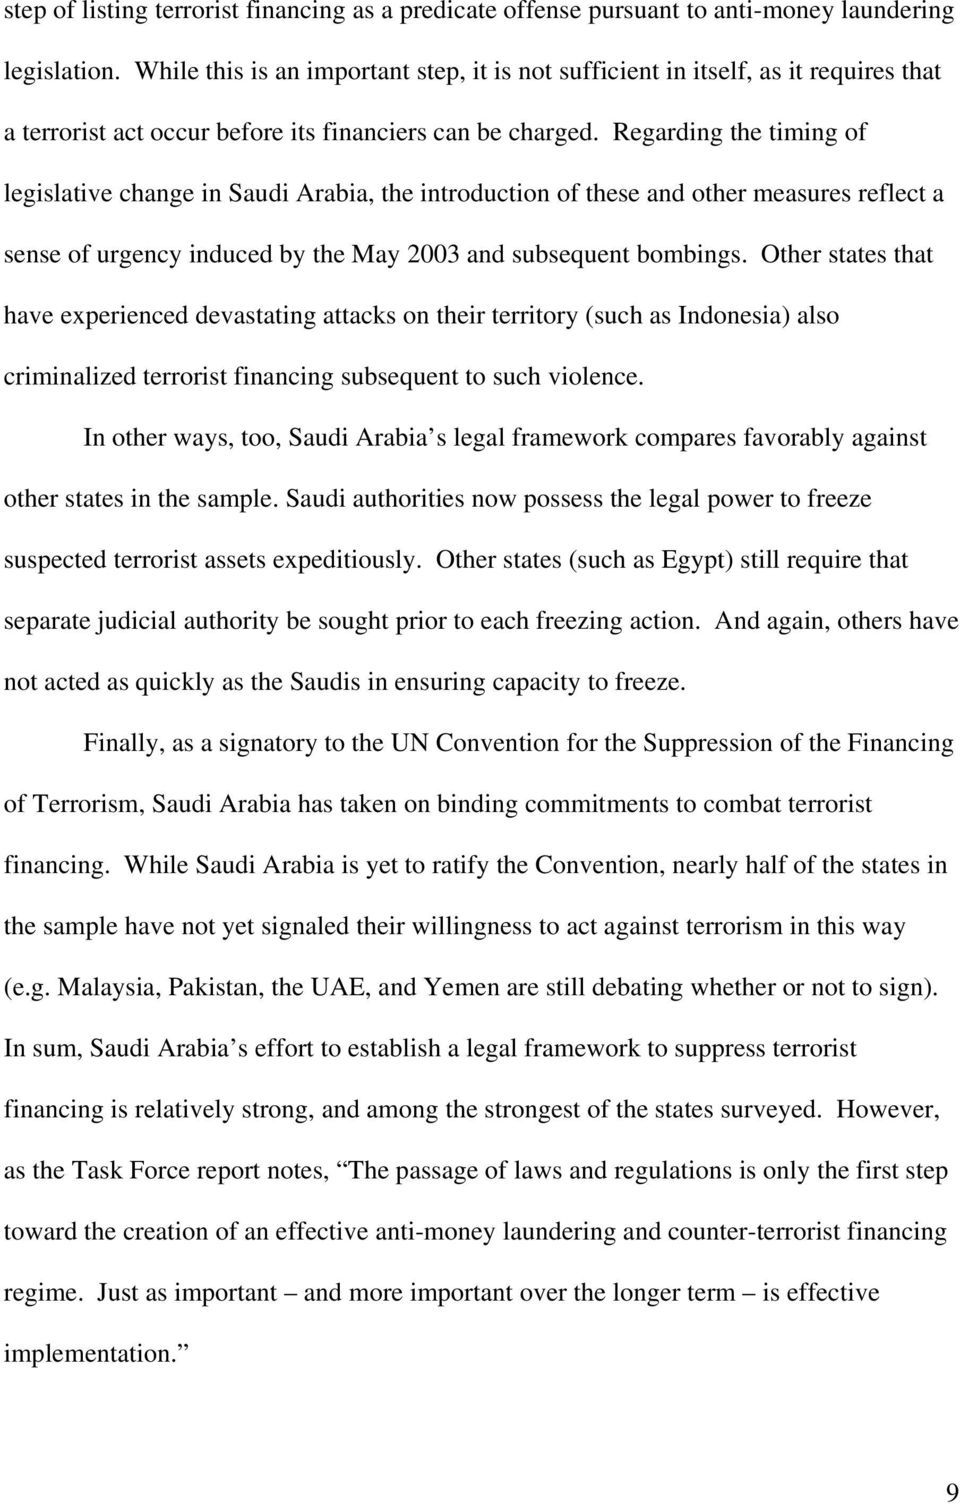 Regarding the timing of legislative change in Saudi Arabia, the introduction of these and other measures reflect a sense of urgency induced by the May 2003 and subsequent bombings.